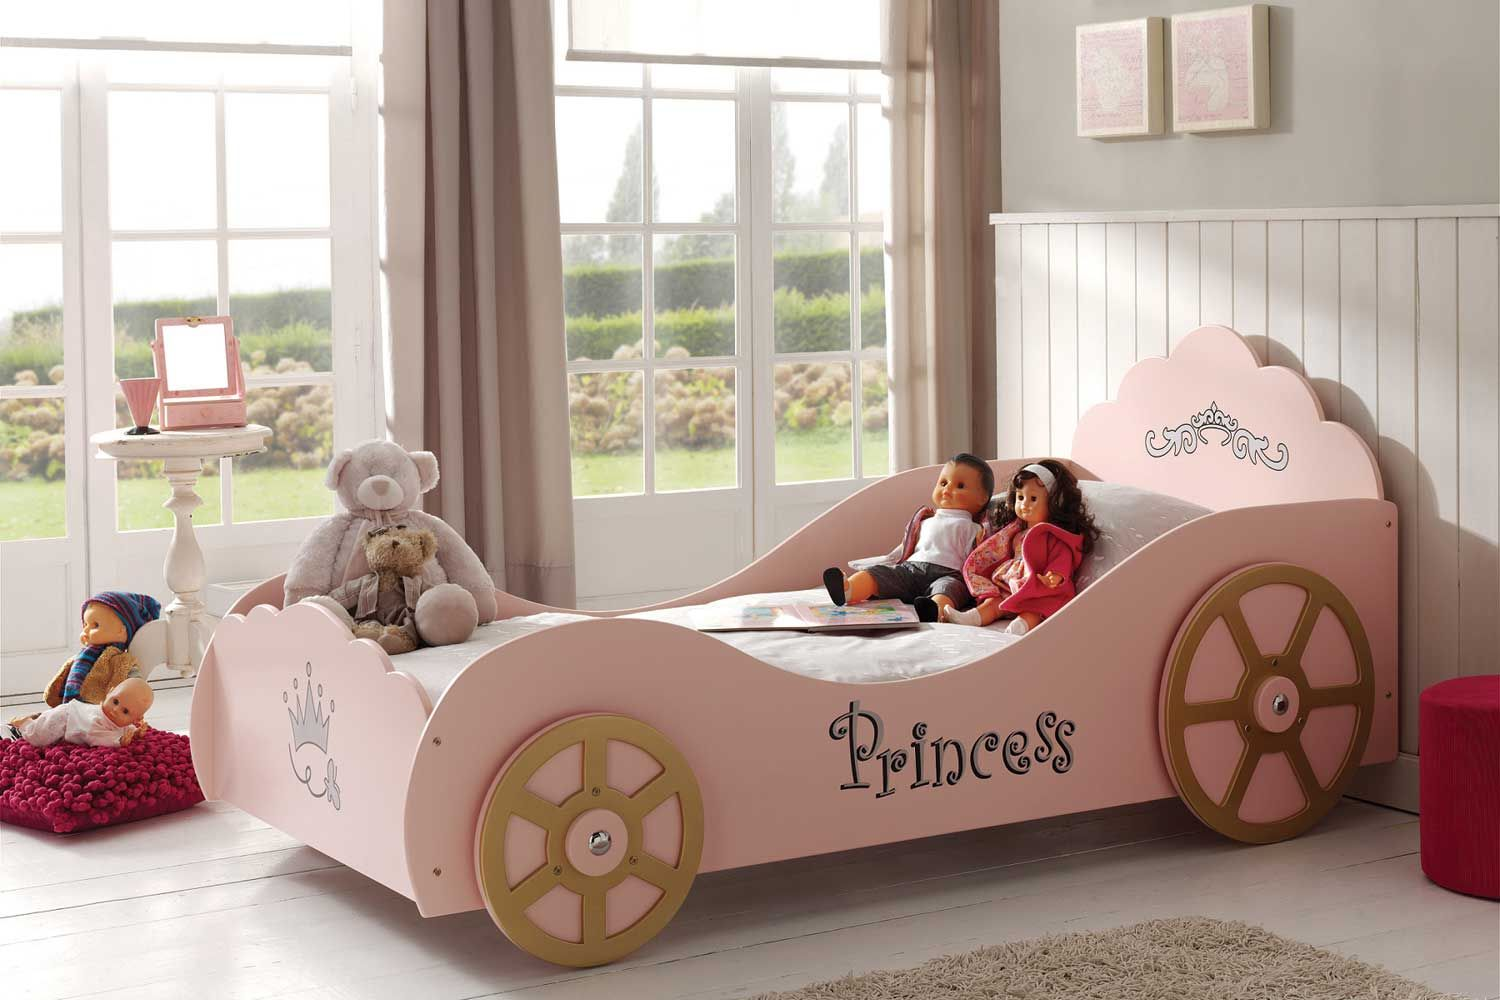 Kids Bedroom Harvey Norman princess car bed framenero furniture | harvey norman new